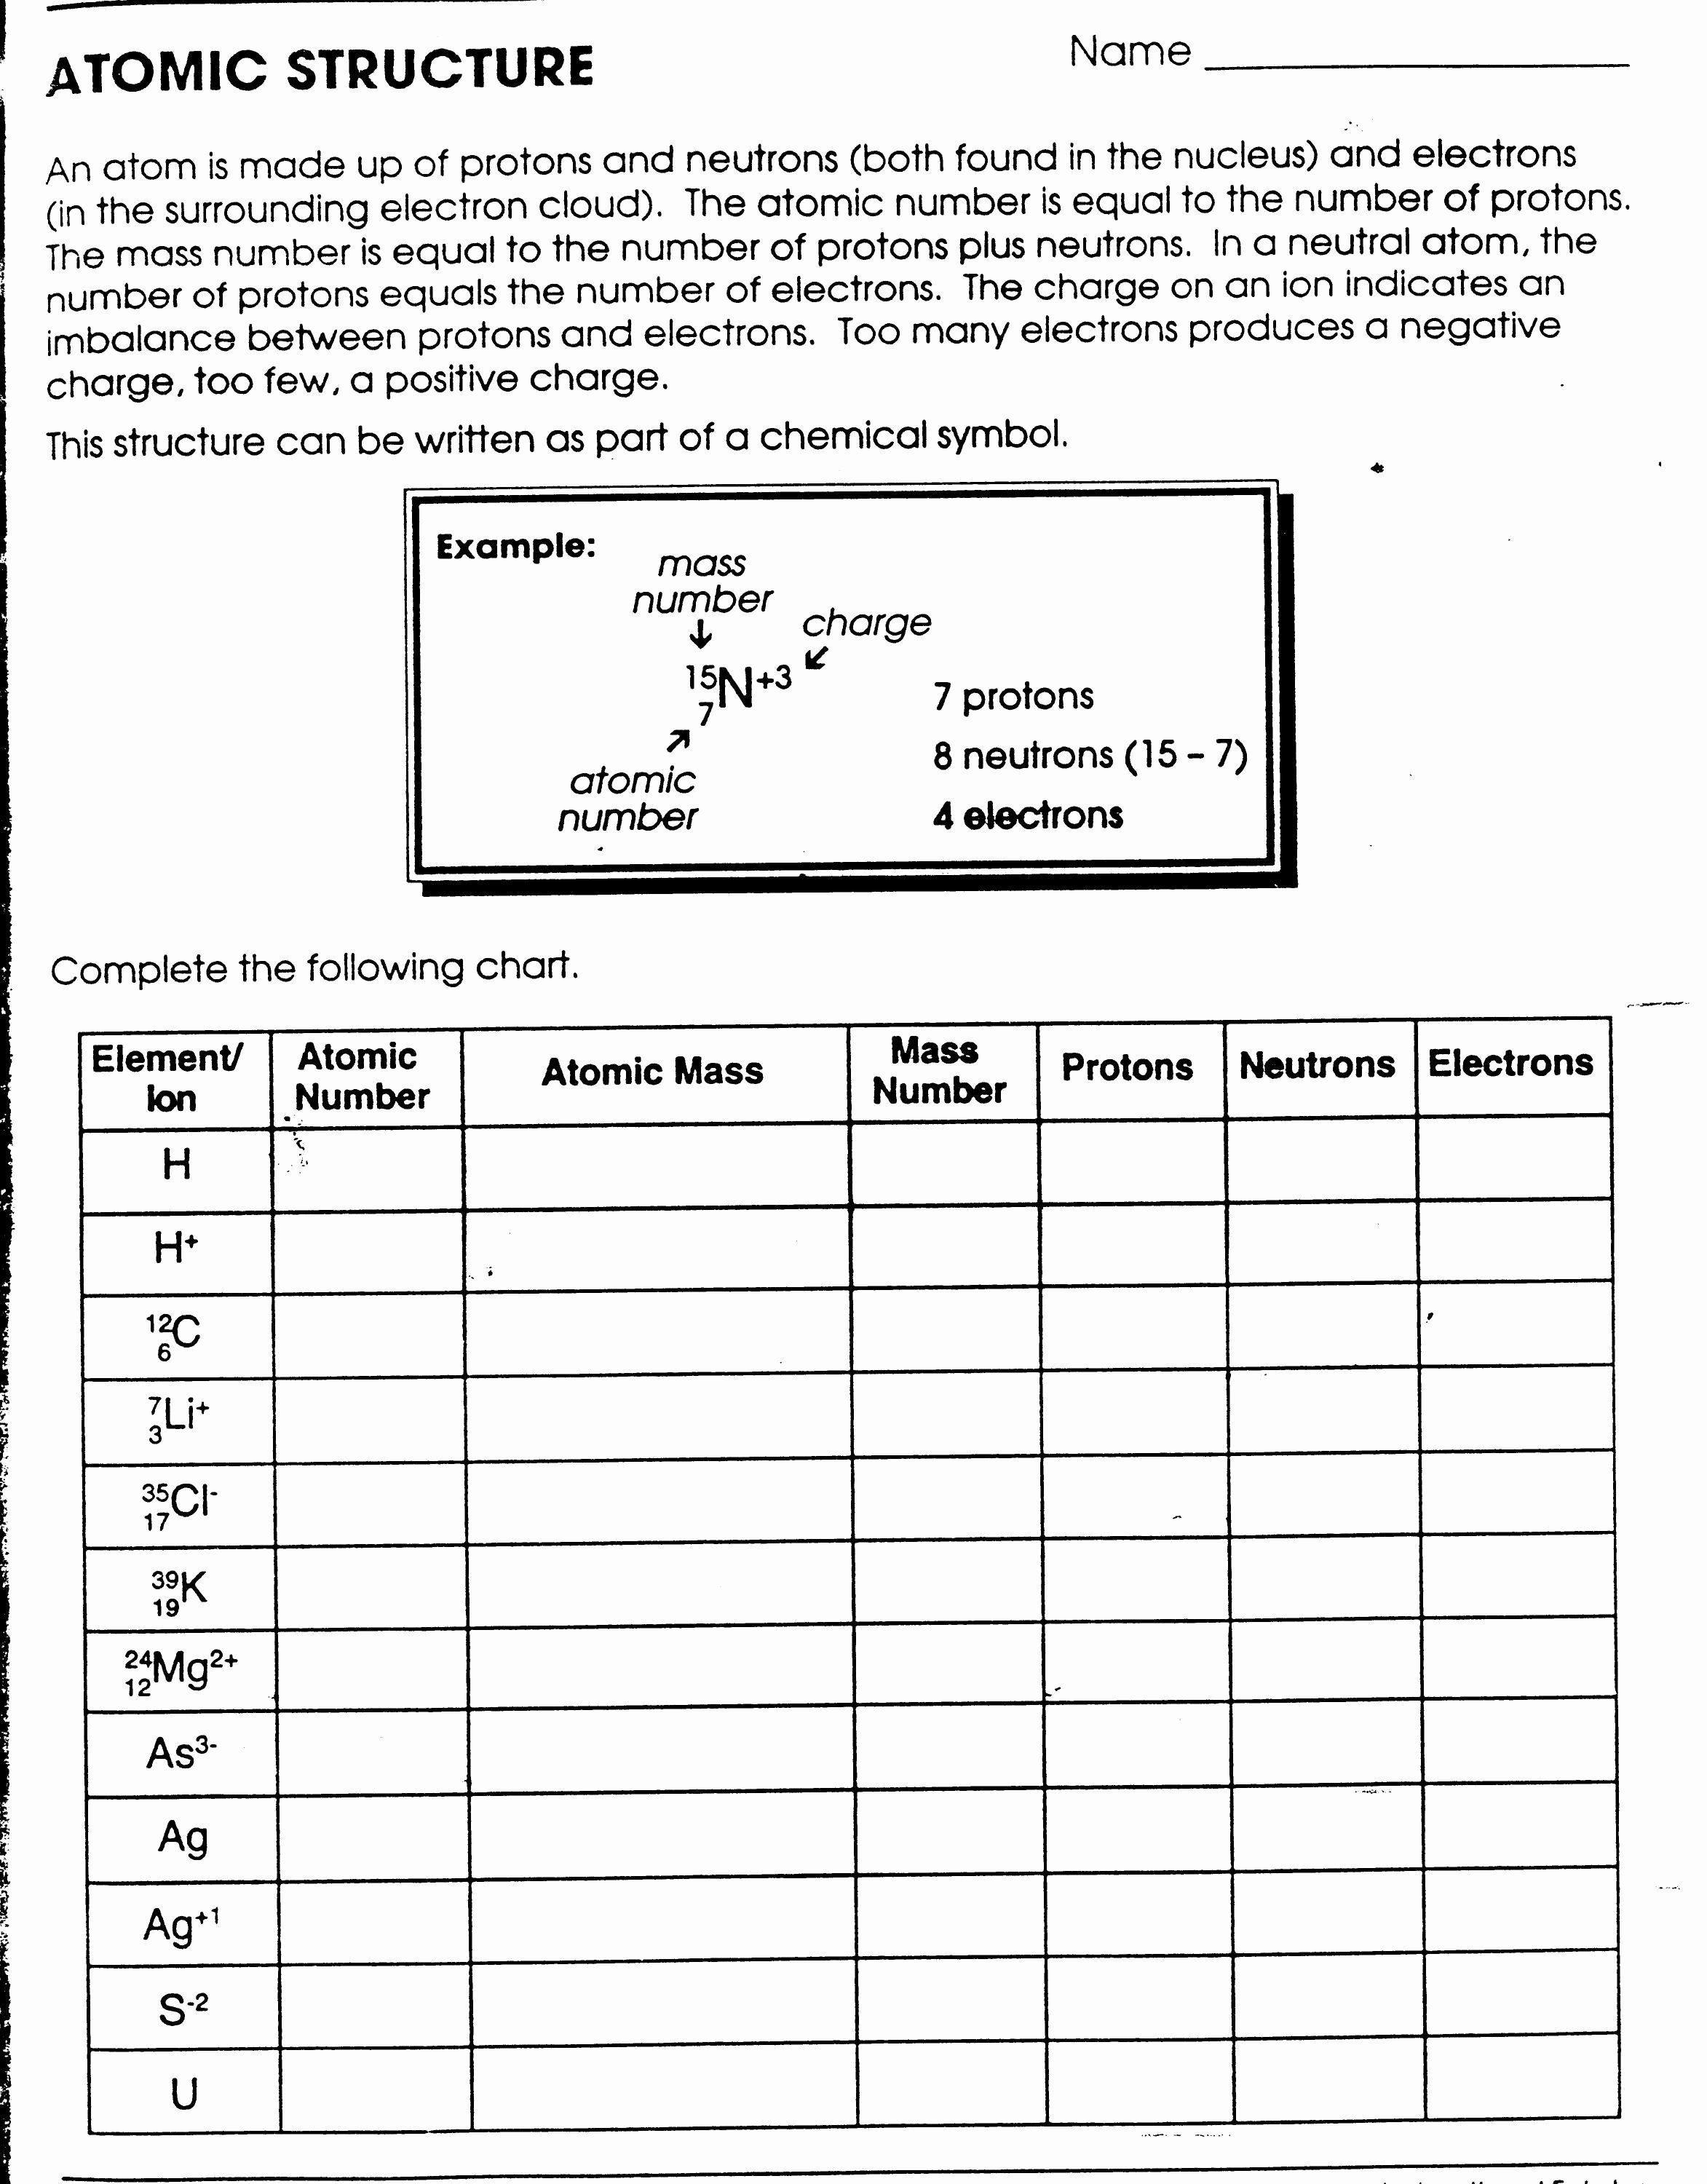 Basic atomic Structure Worksheet Inspirational 12 Best Of atomic Structure Diagram Worksheet